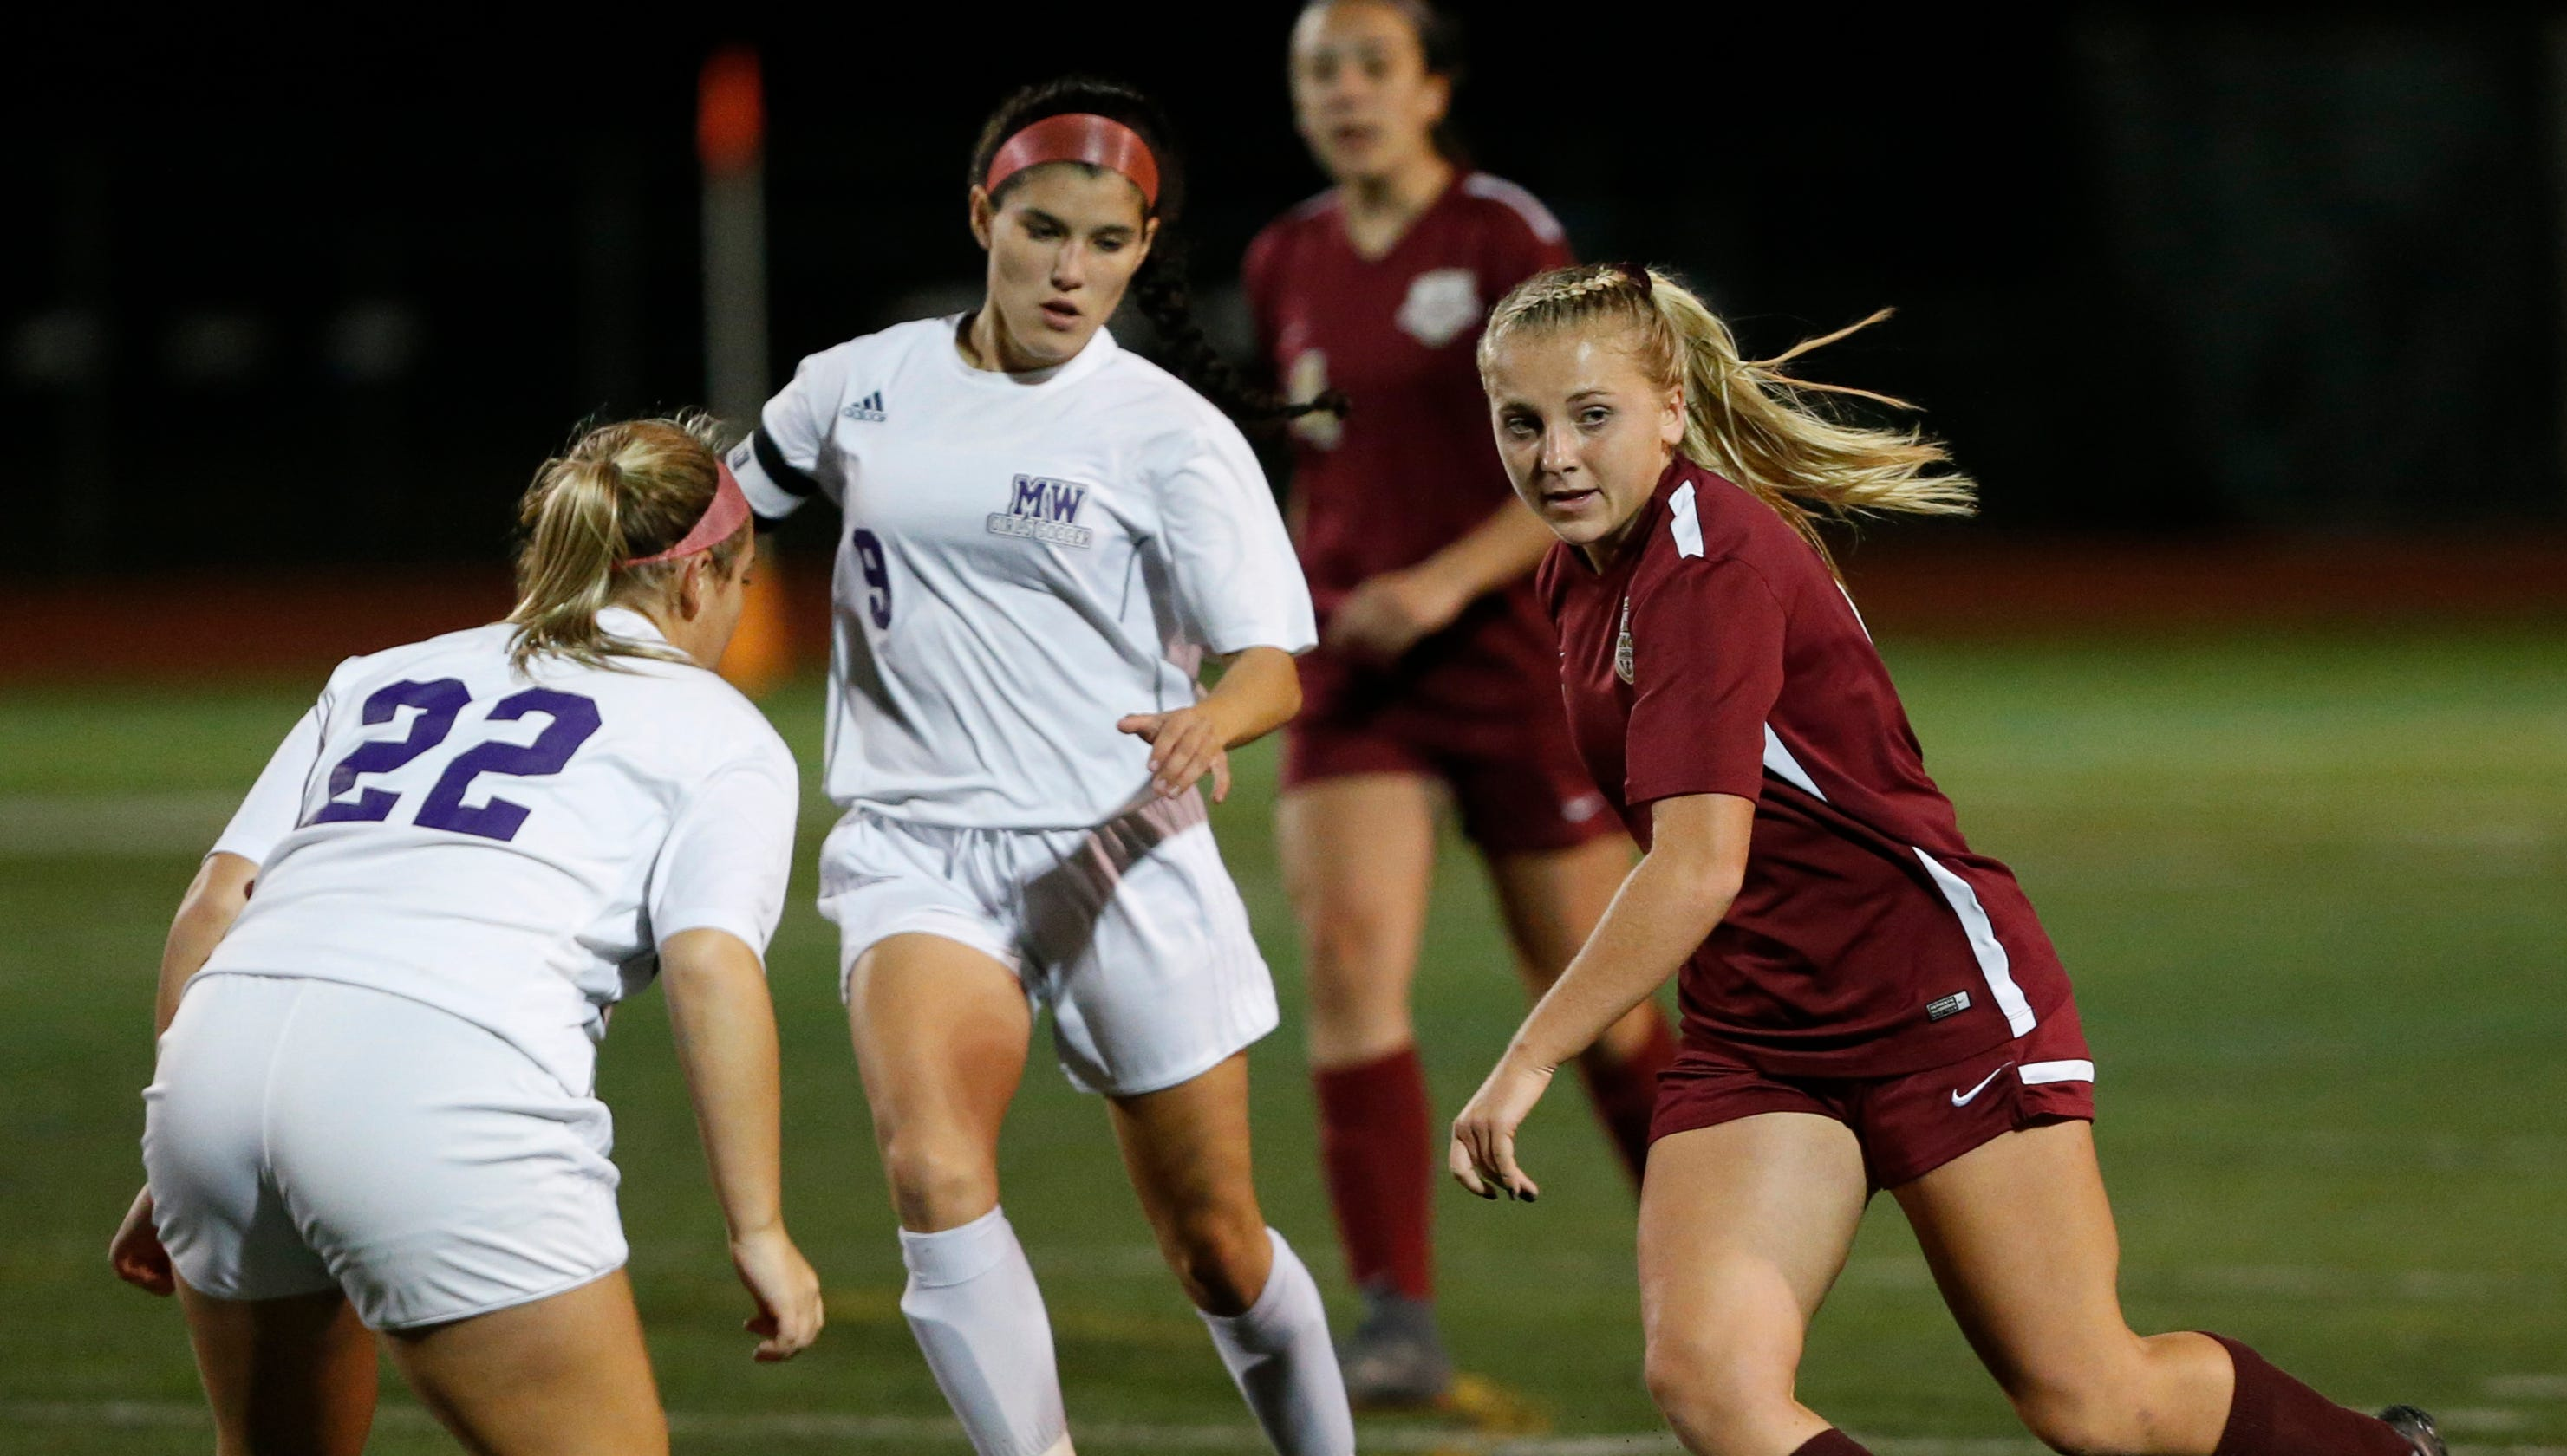 ef9d557d45 Girls soccer  2018 all-state selections announced